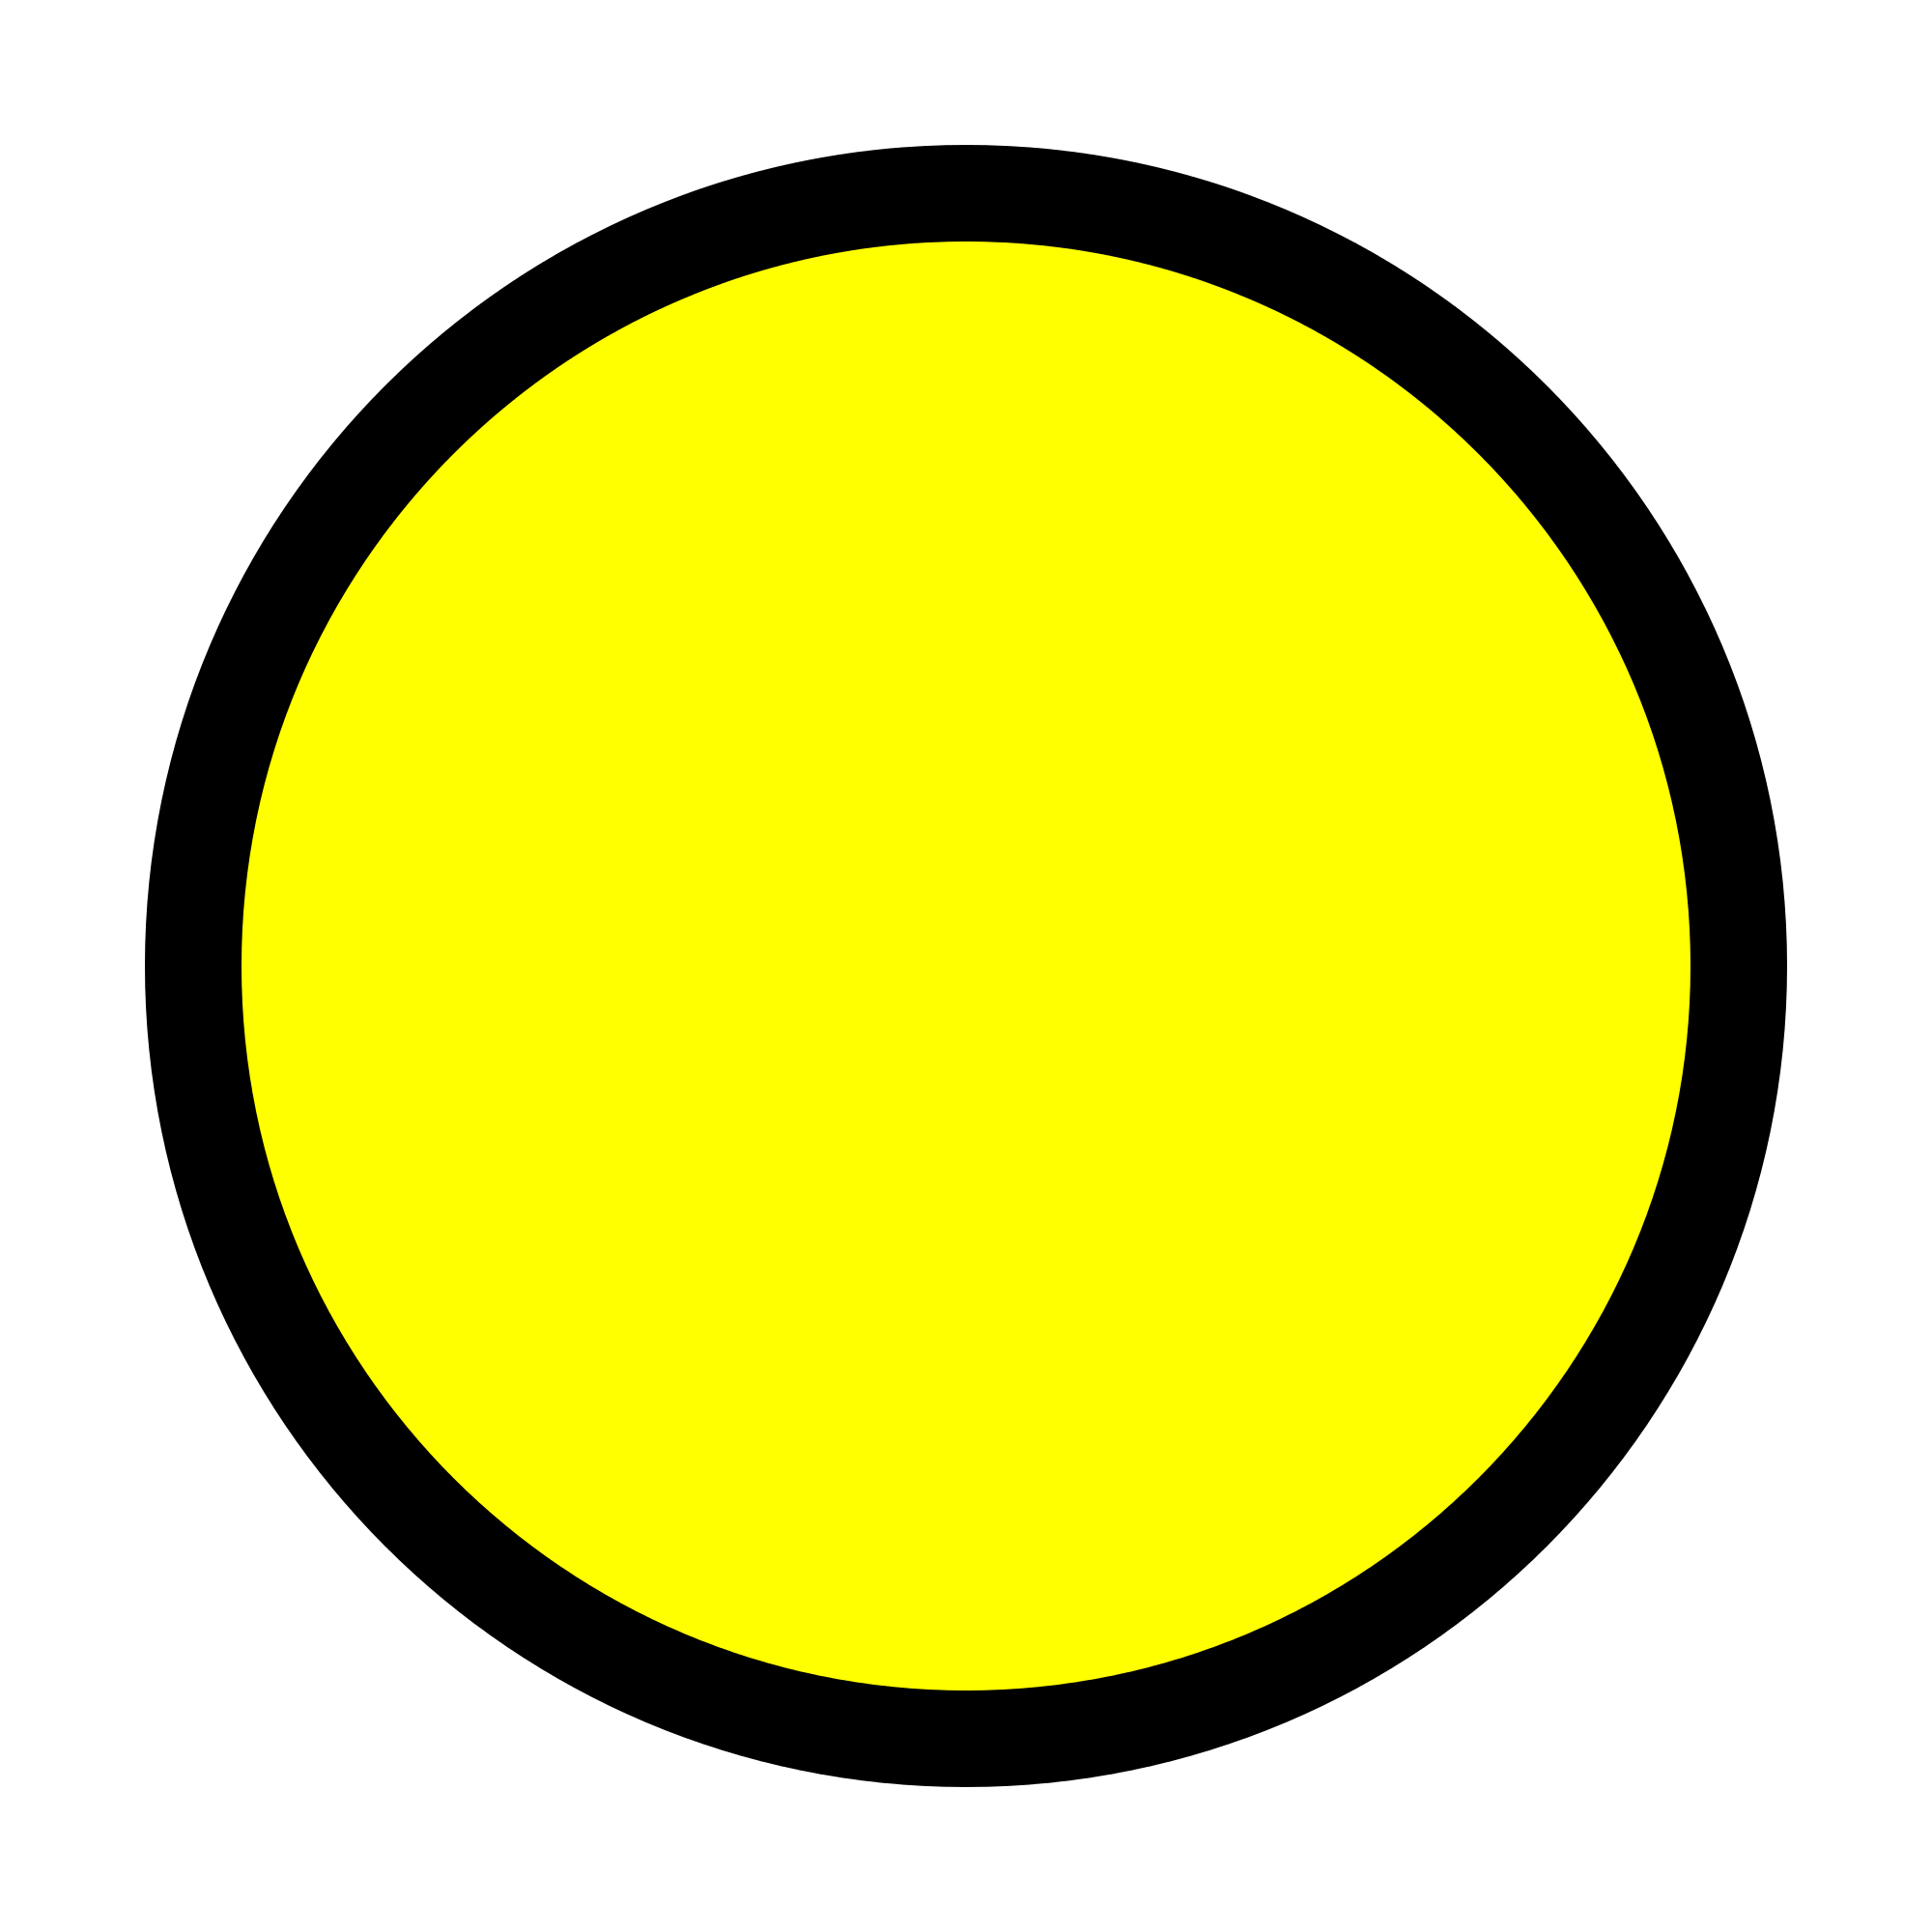 Yellow circle png. File svg wikimedia commons